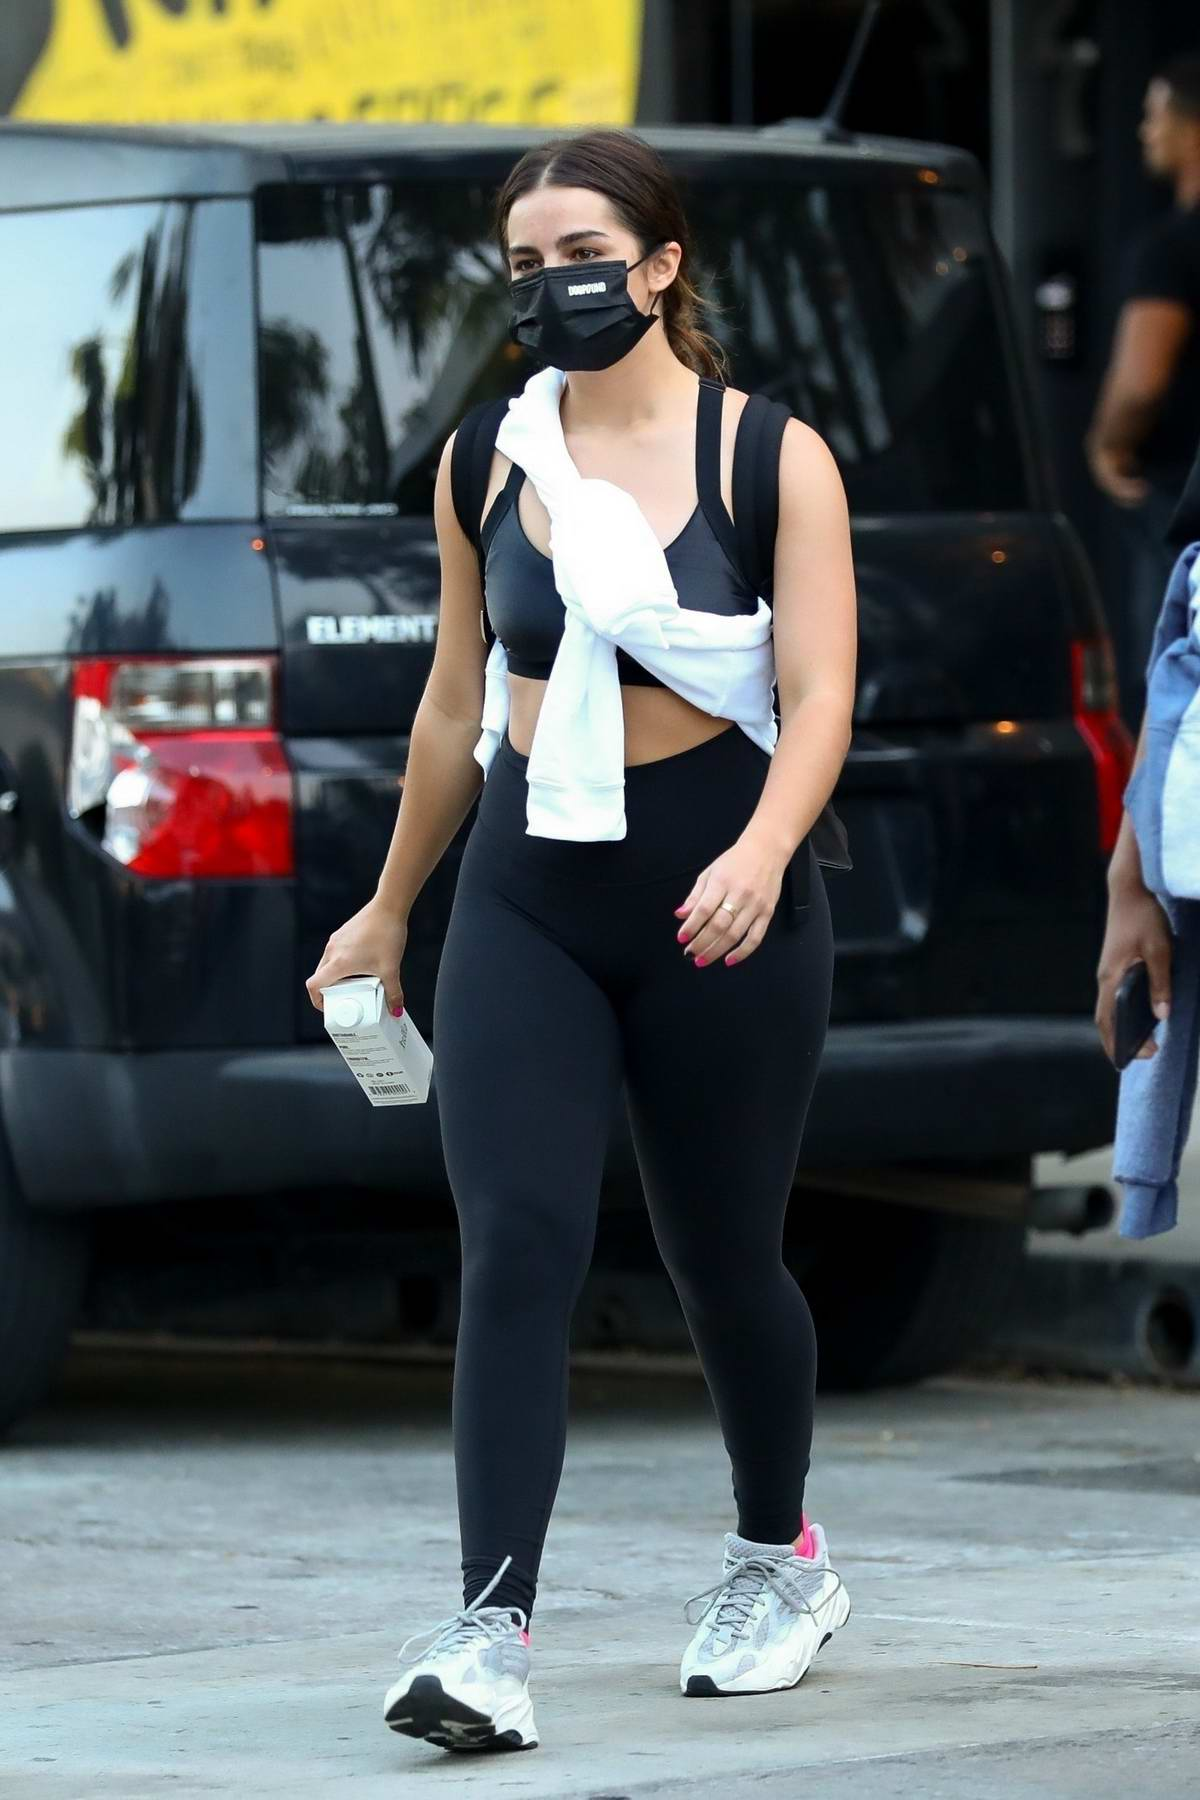 Addison Rae seen leaving after a workout session at Dogpound in West Hollywood, California